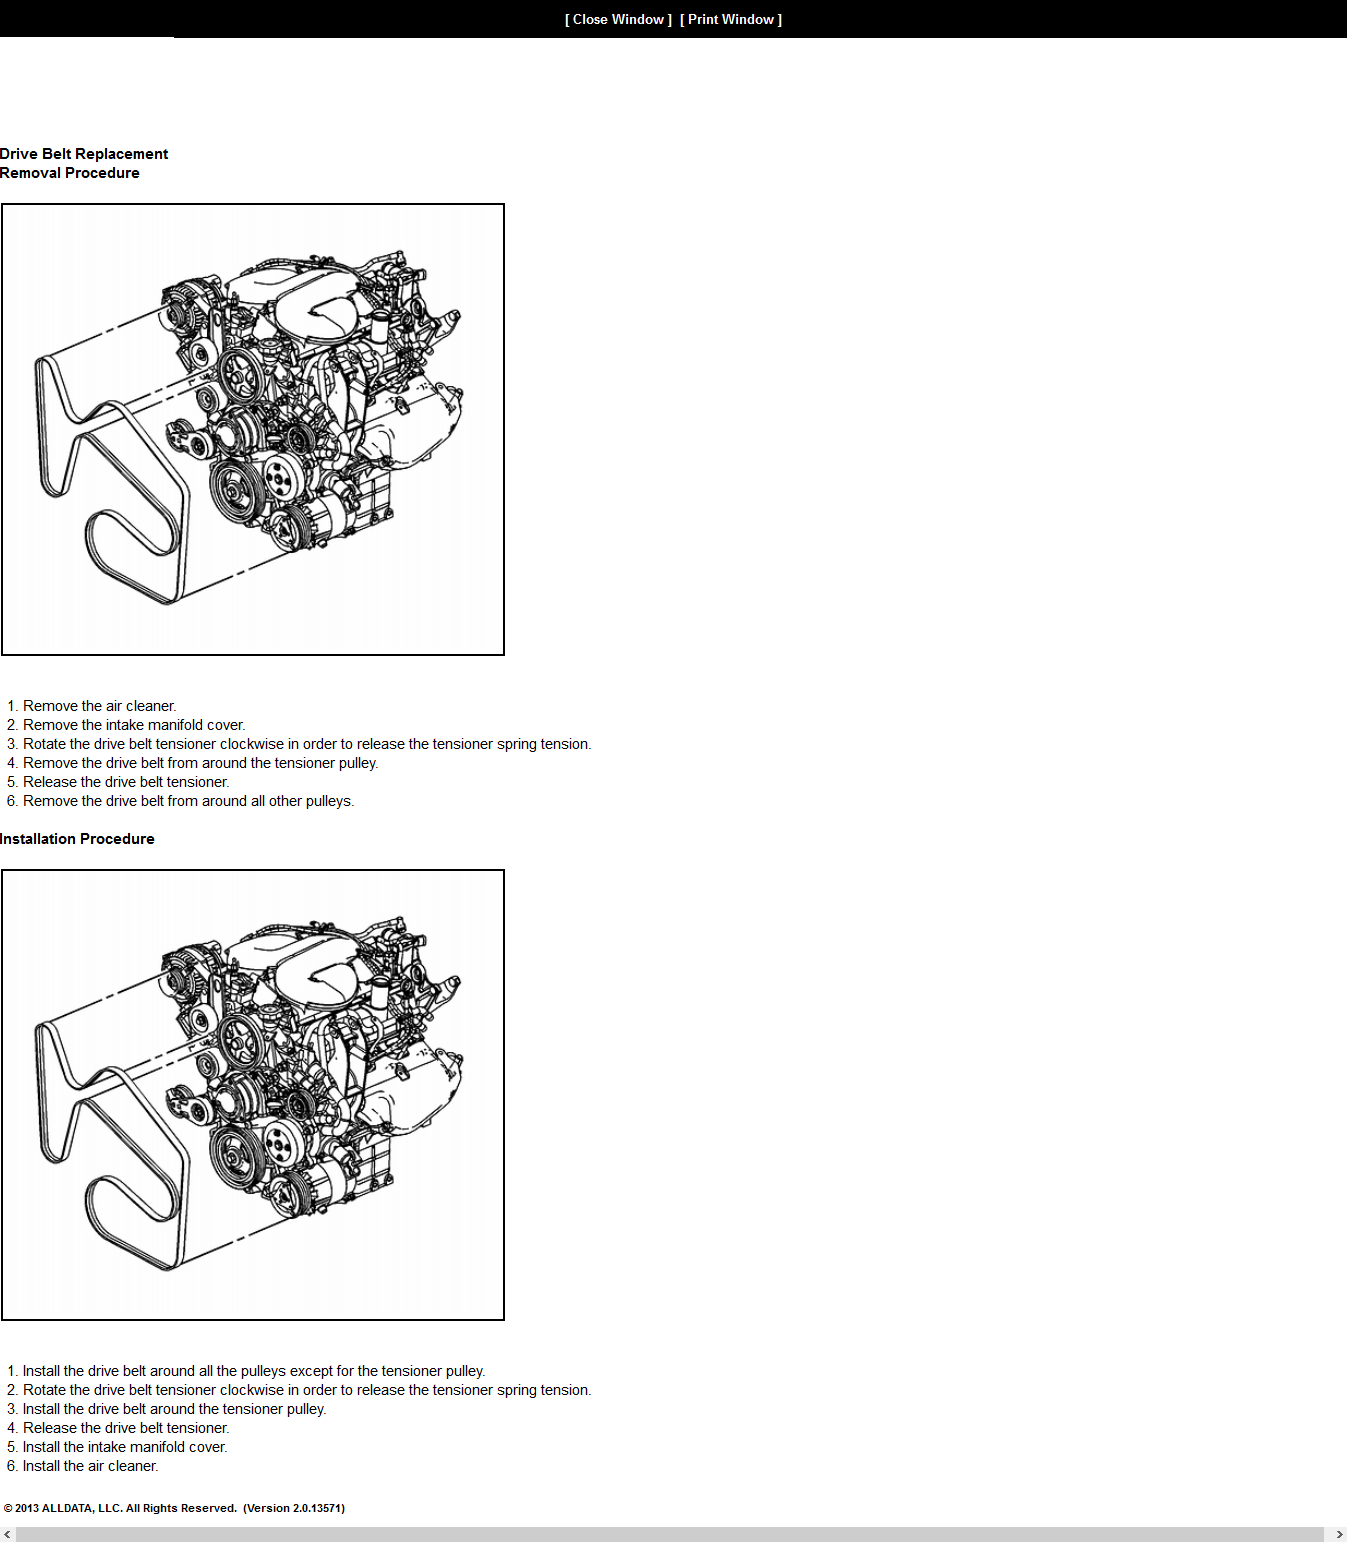 3400 Sfi Engine Diagram Power Steering Trusted Wiring Diagrams Chevy Venture Chevrolet 3 4 Electrical Gm 34l V6